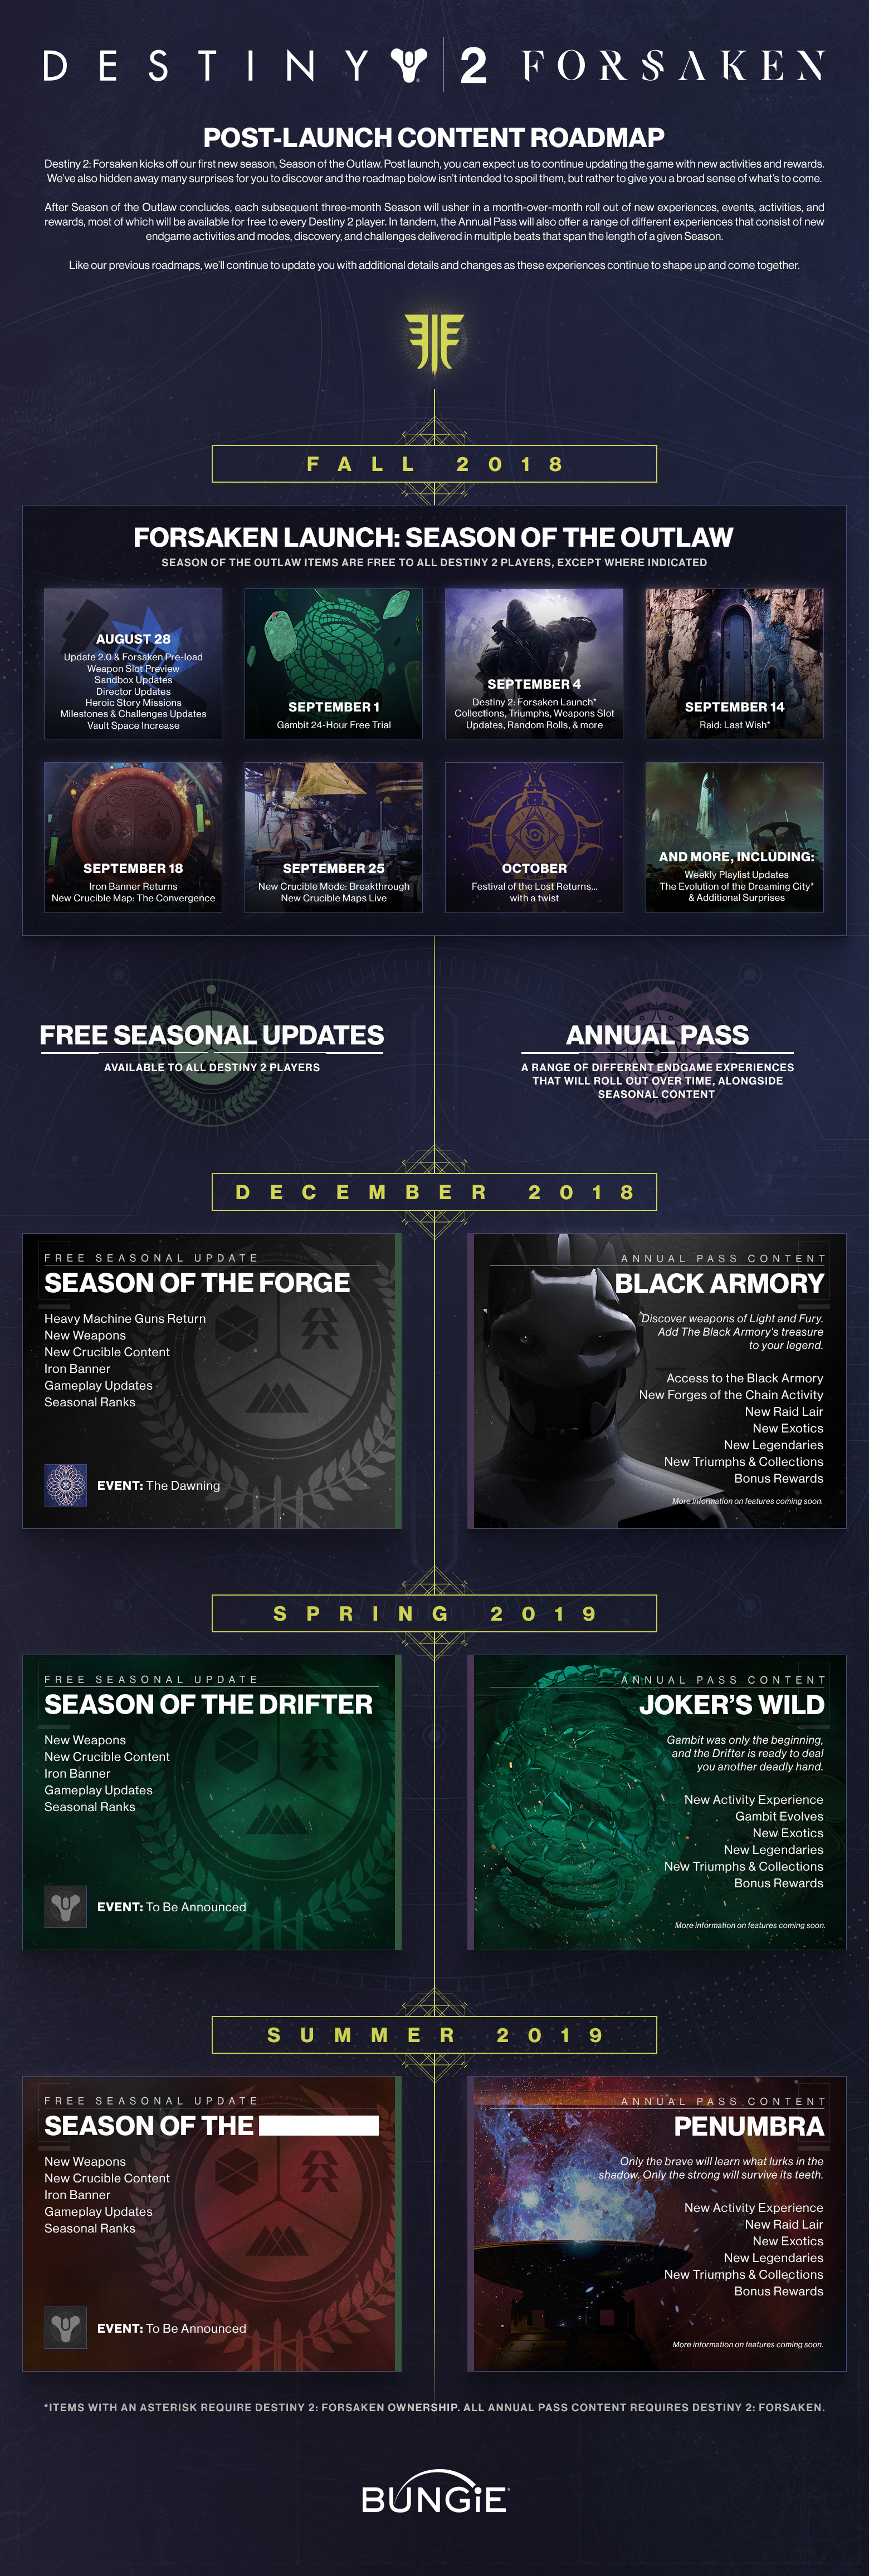 Destiny 2 Forsaken Post Launch Content Roadmap Laid Out Through